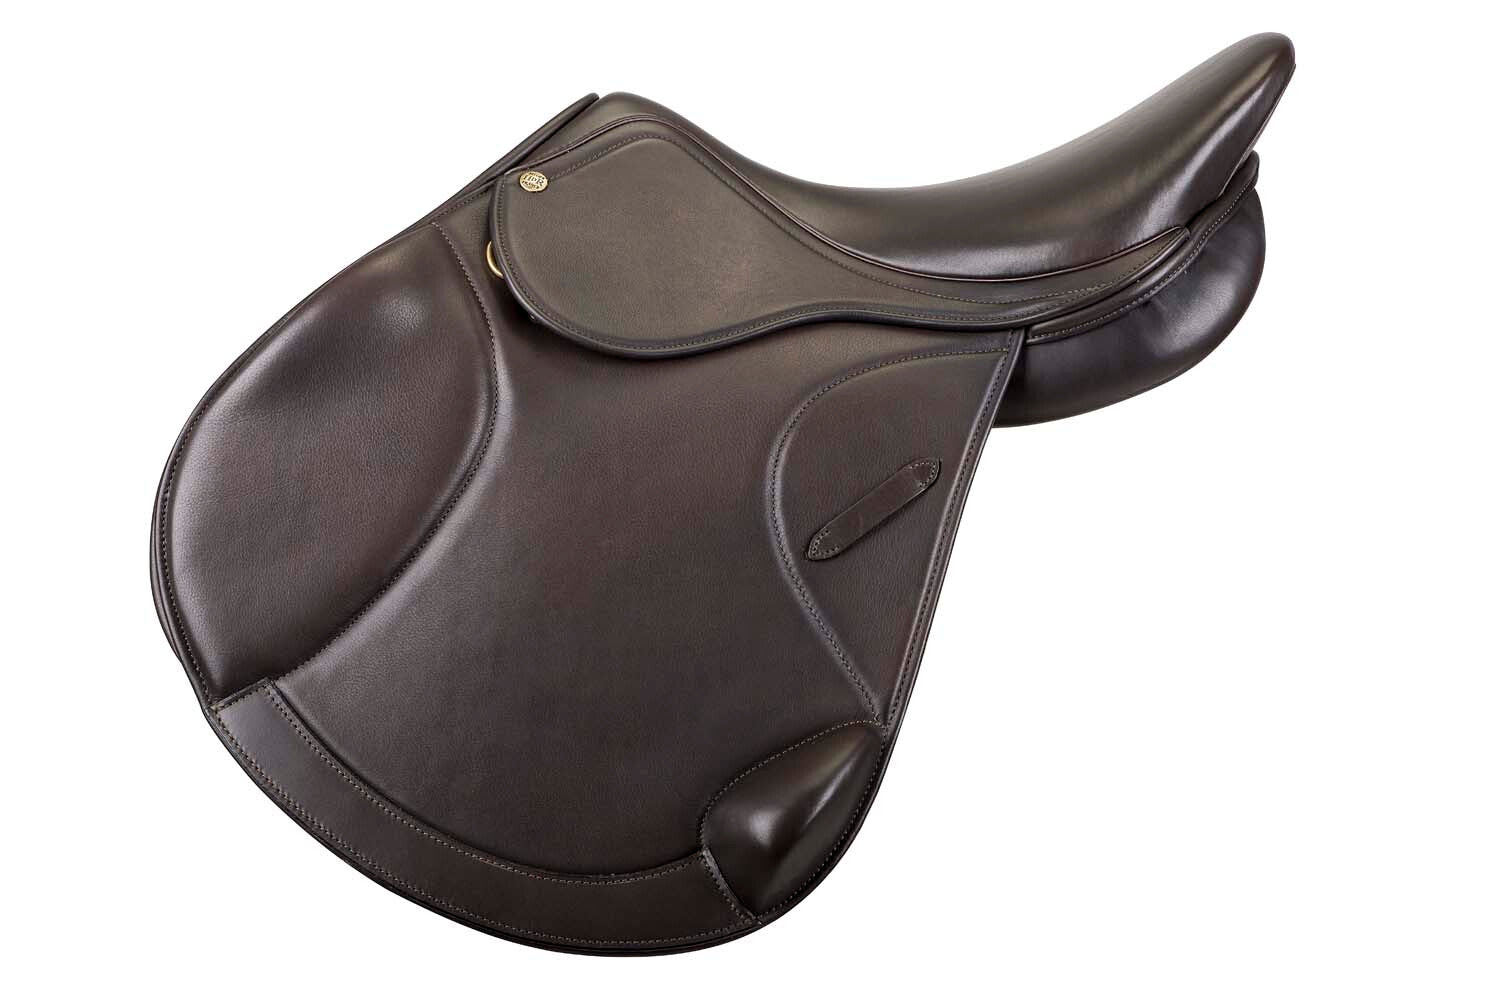 Henri de Rivel Phoenix Close Contact Saddle - Henri de Rivel - Breeches.com